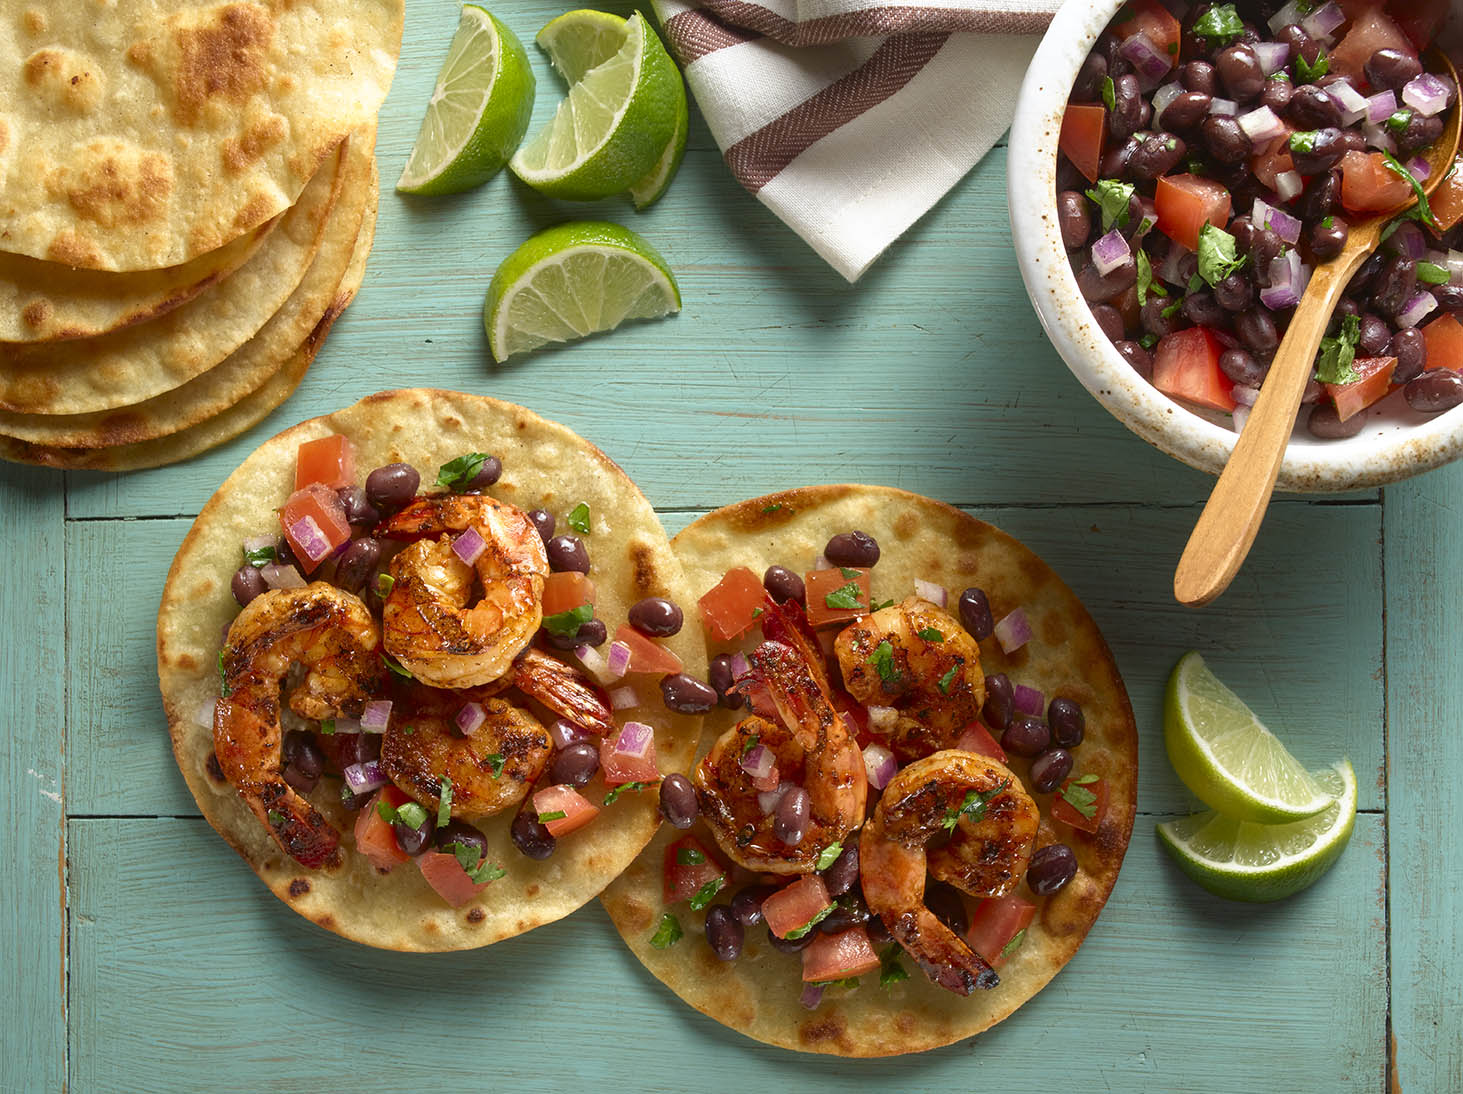 Grilled Shrimp Tostadas with Black Bean Salsa